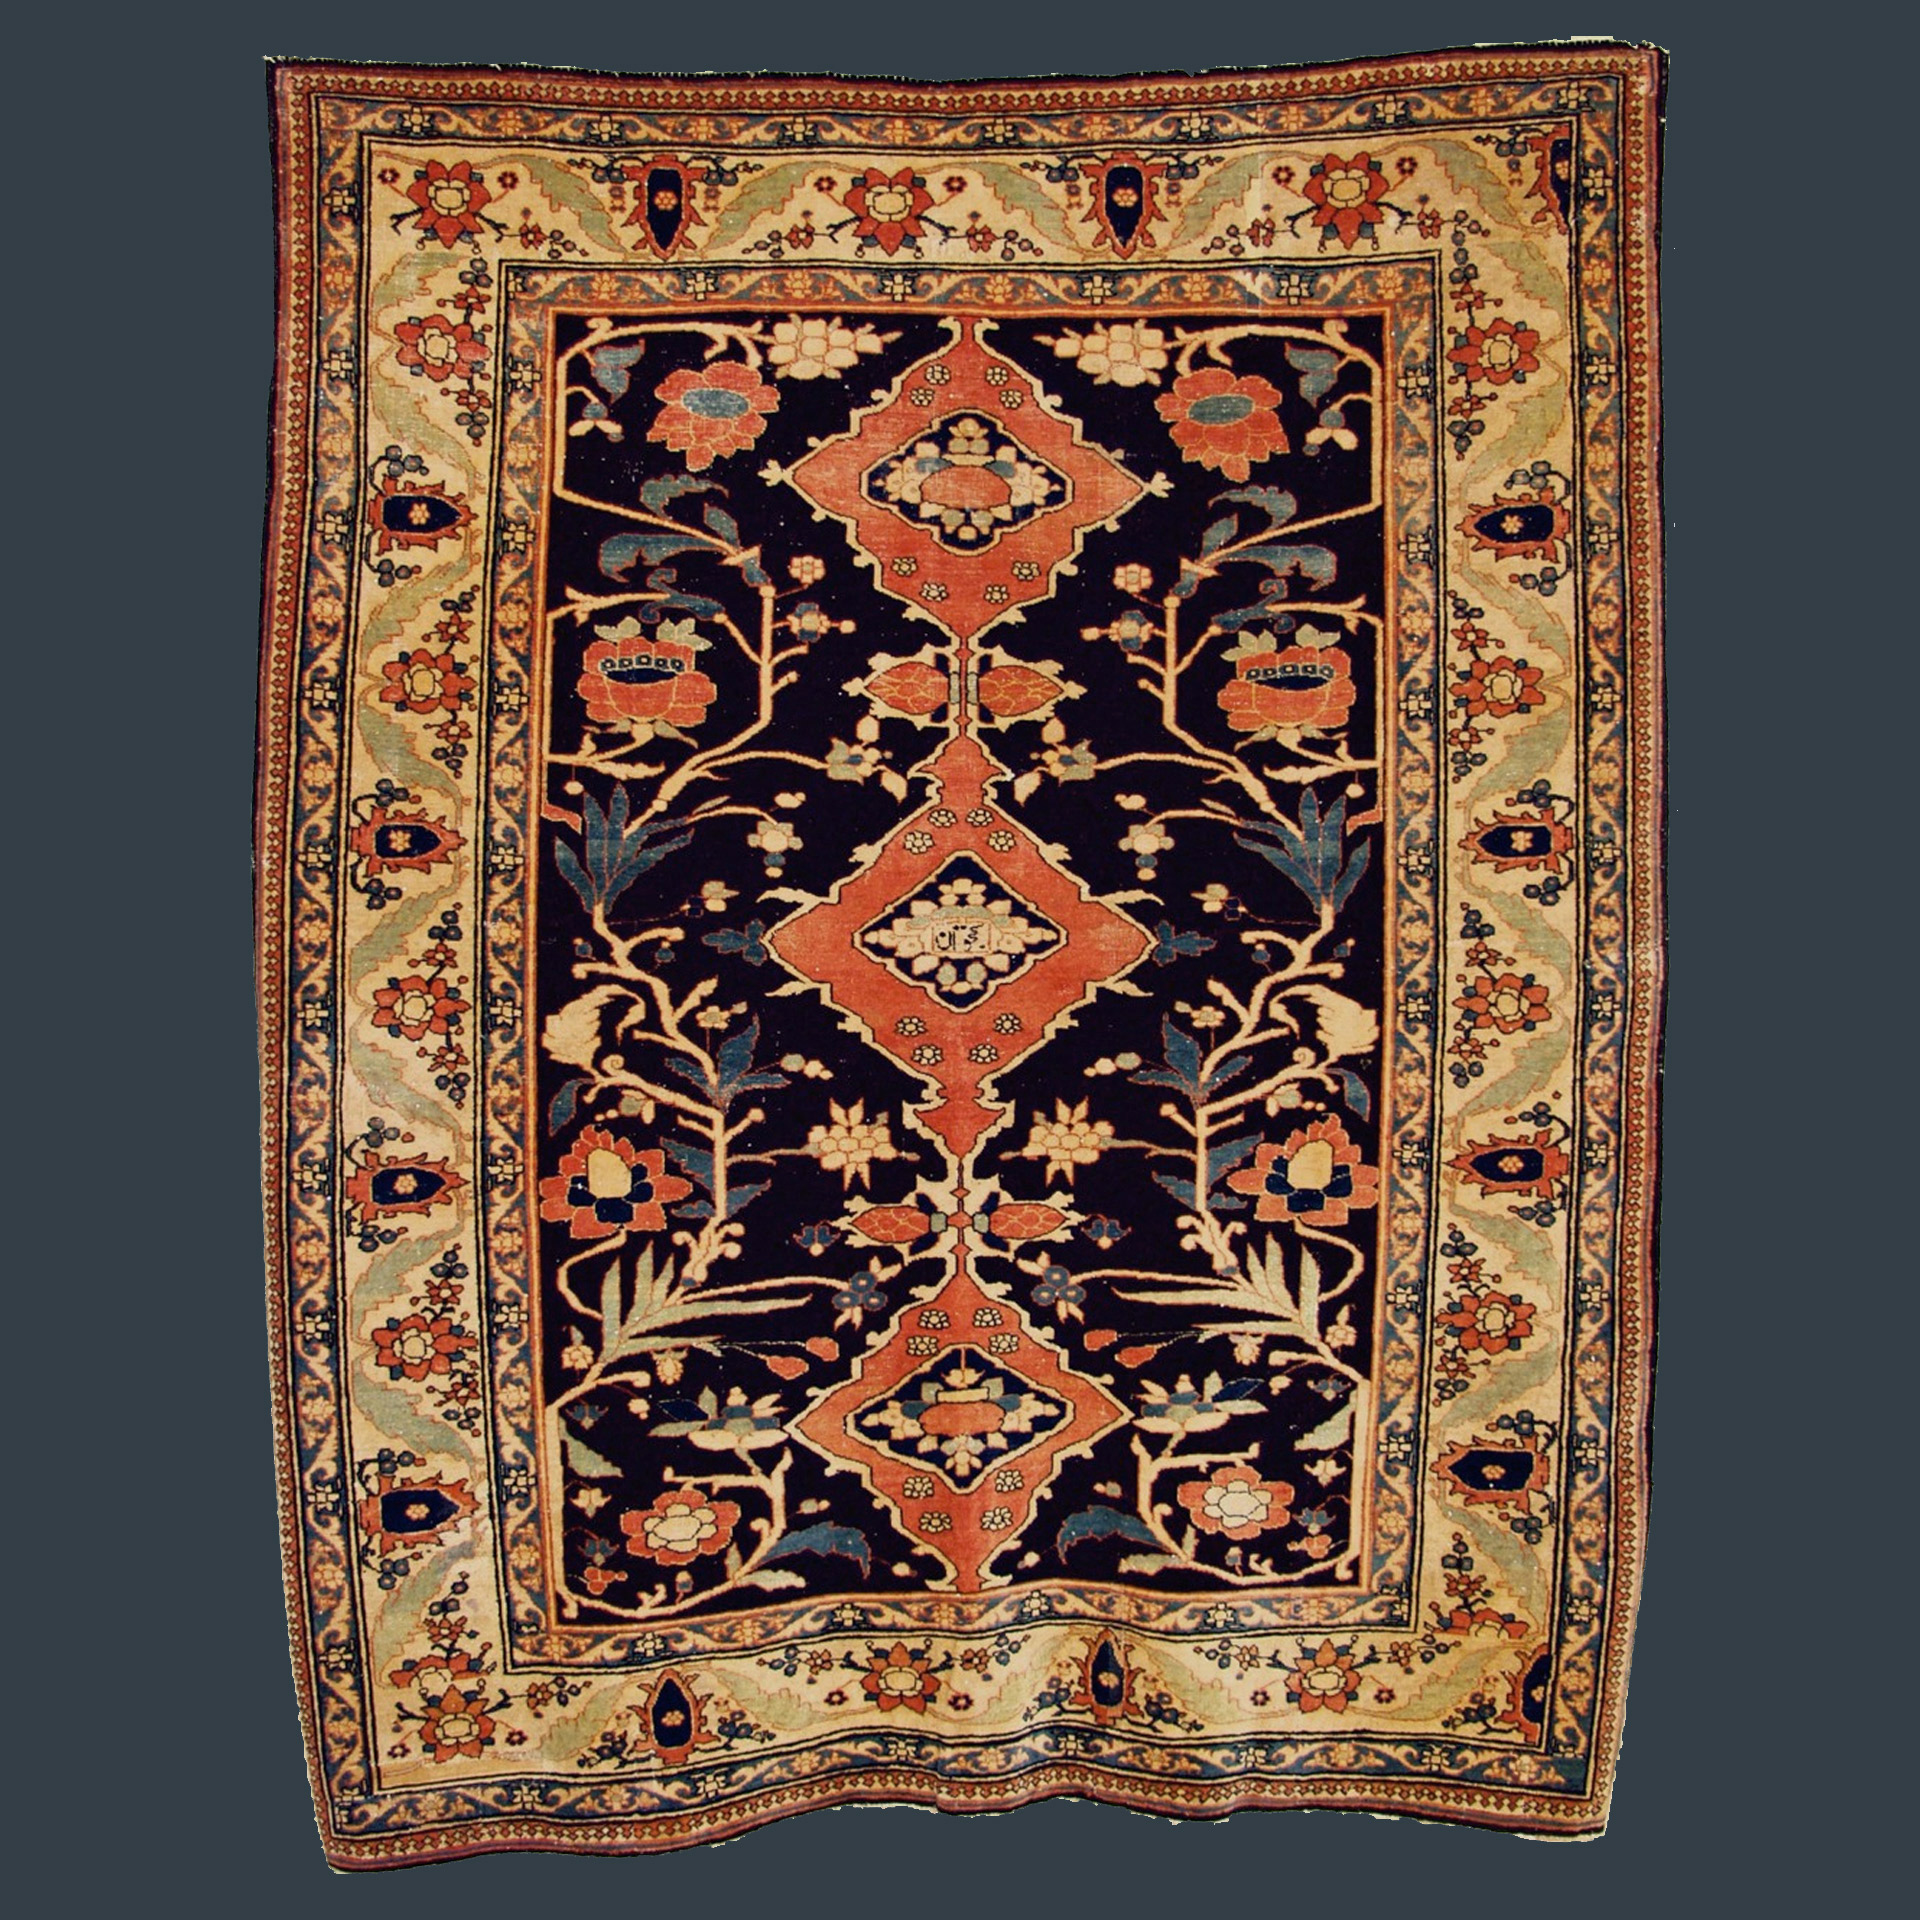 A 19th century antique Persian Tabriz rug with three medallions on a navy blue field, circa 1880 - Douglas Stock Gallery Antique Rug Research Archives